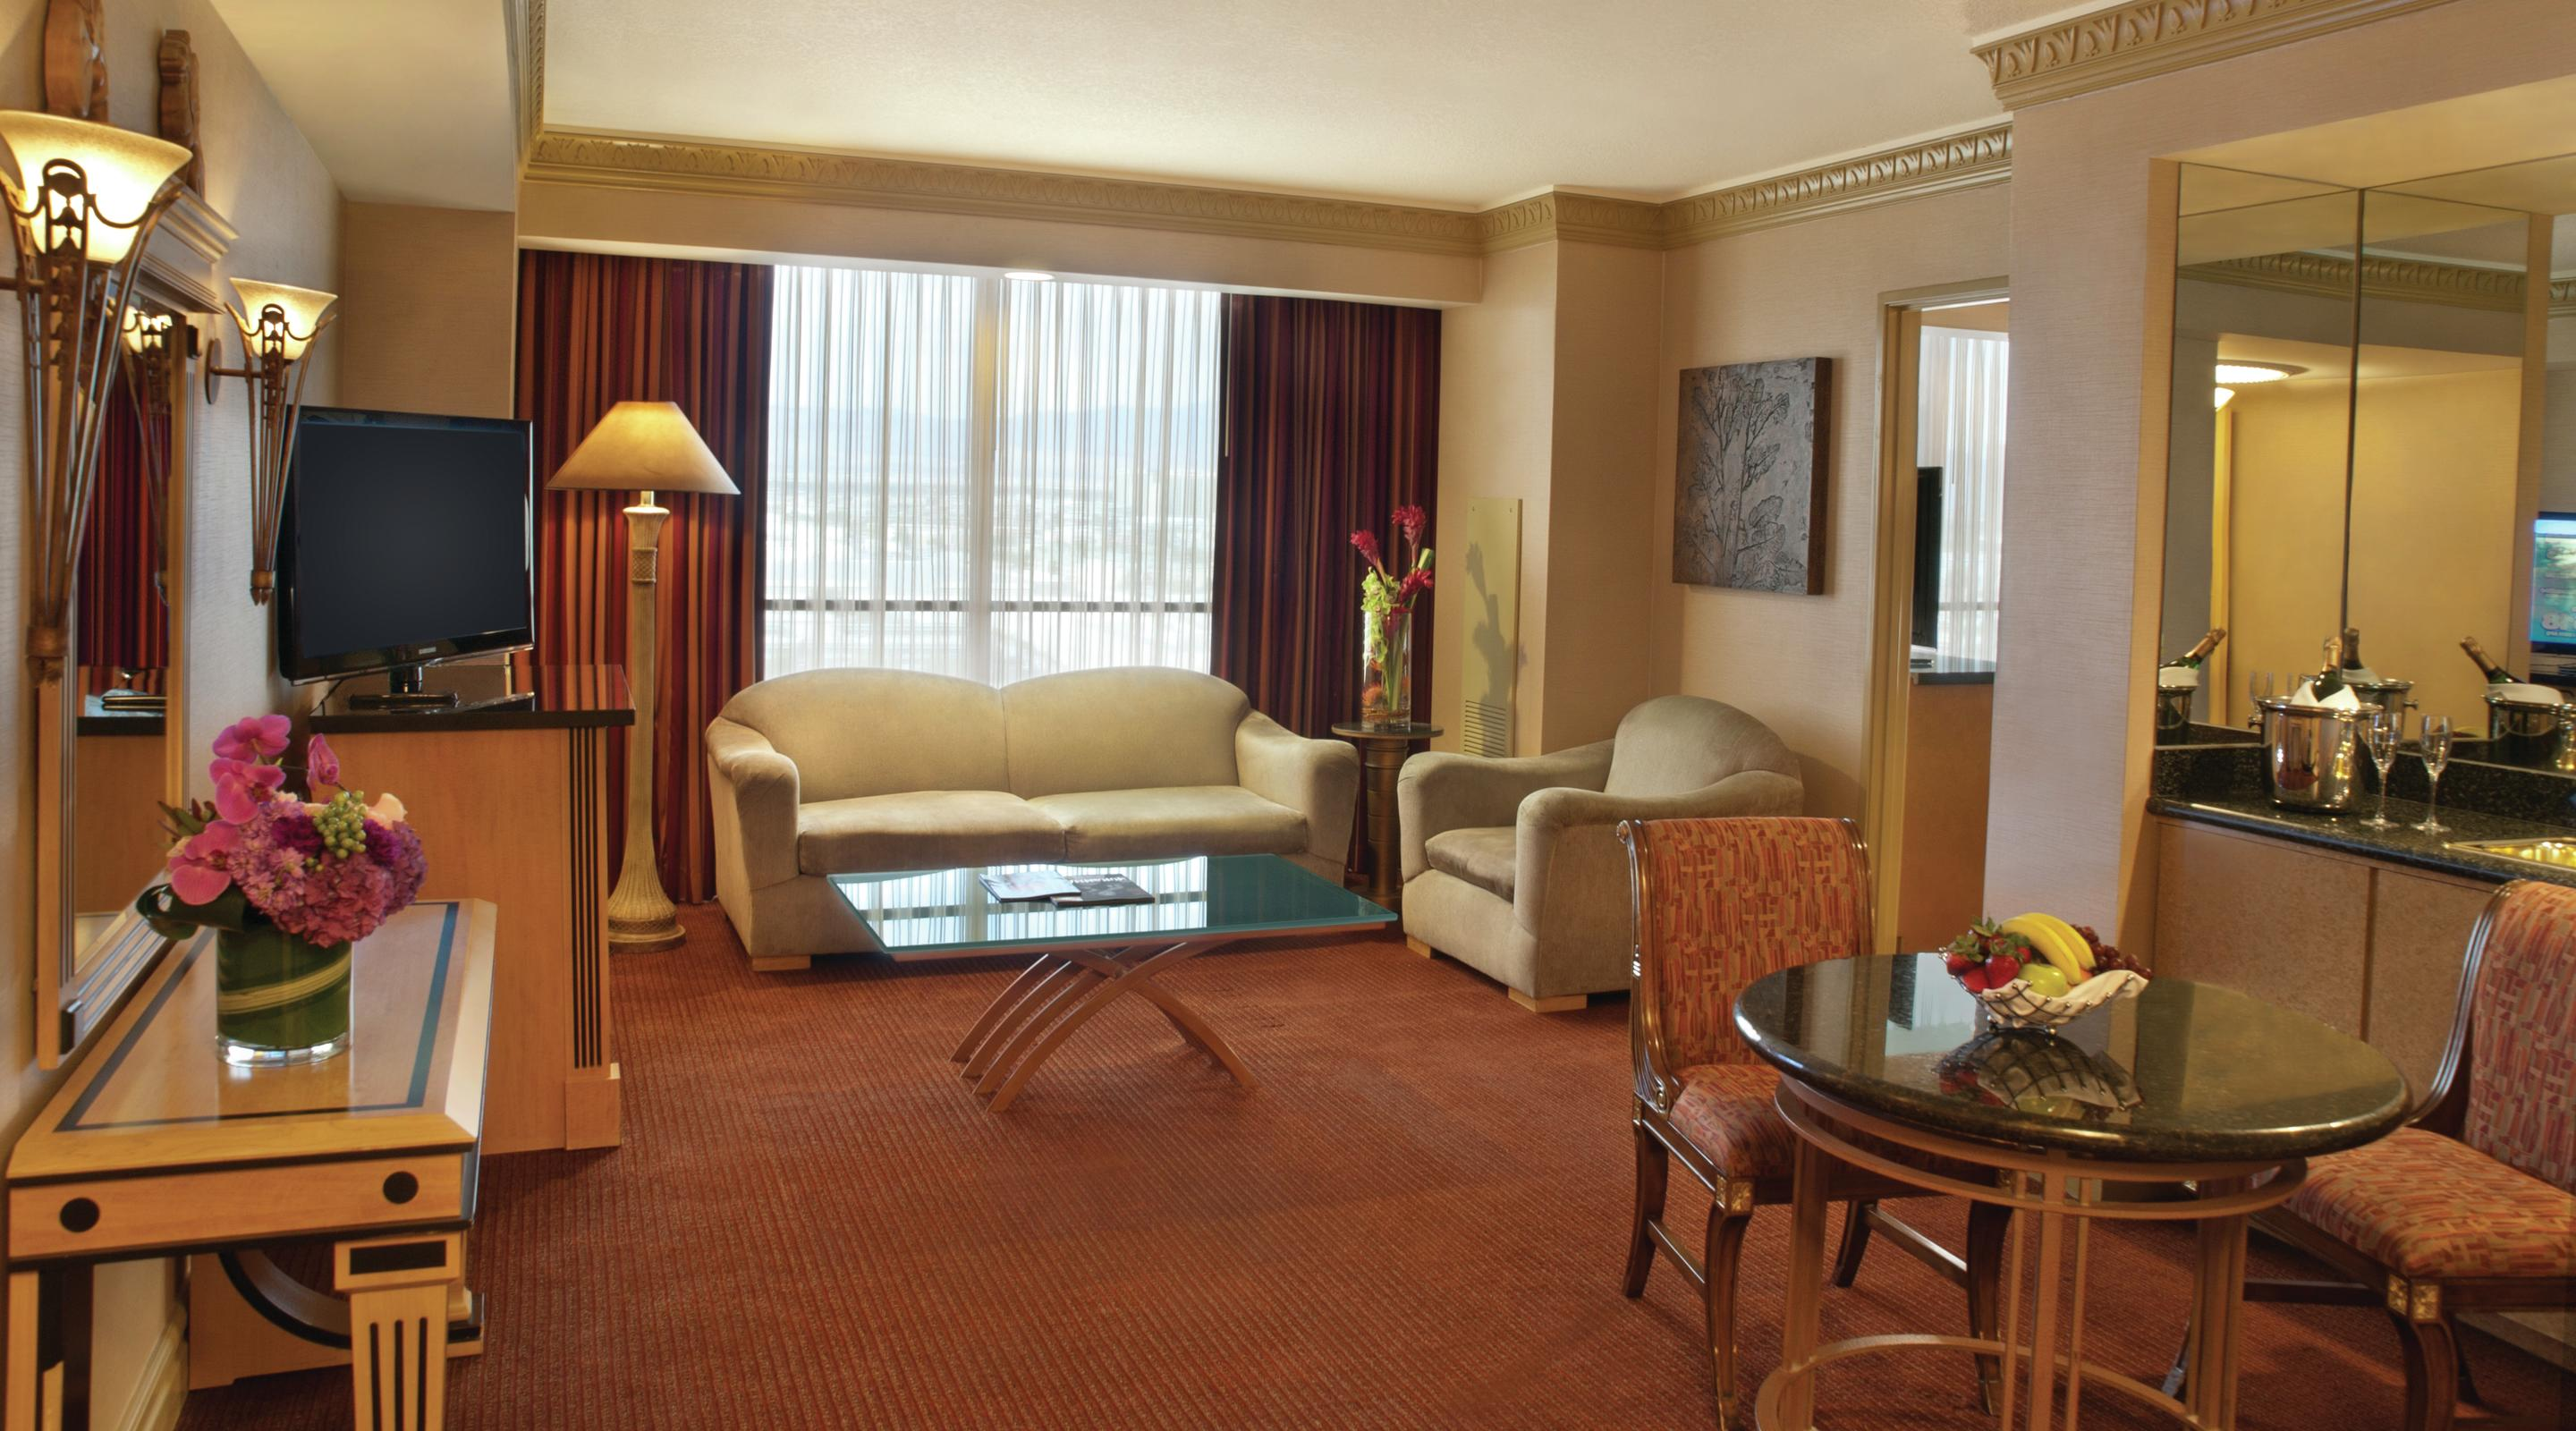 Image gallery luxor suites for Luxury hotel suites